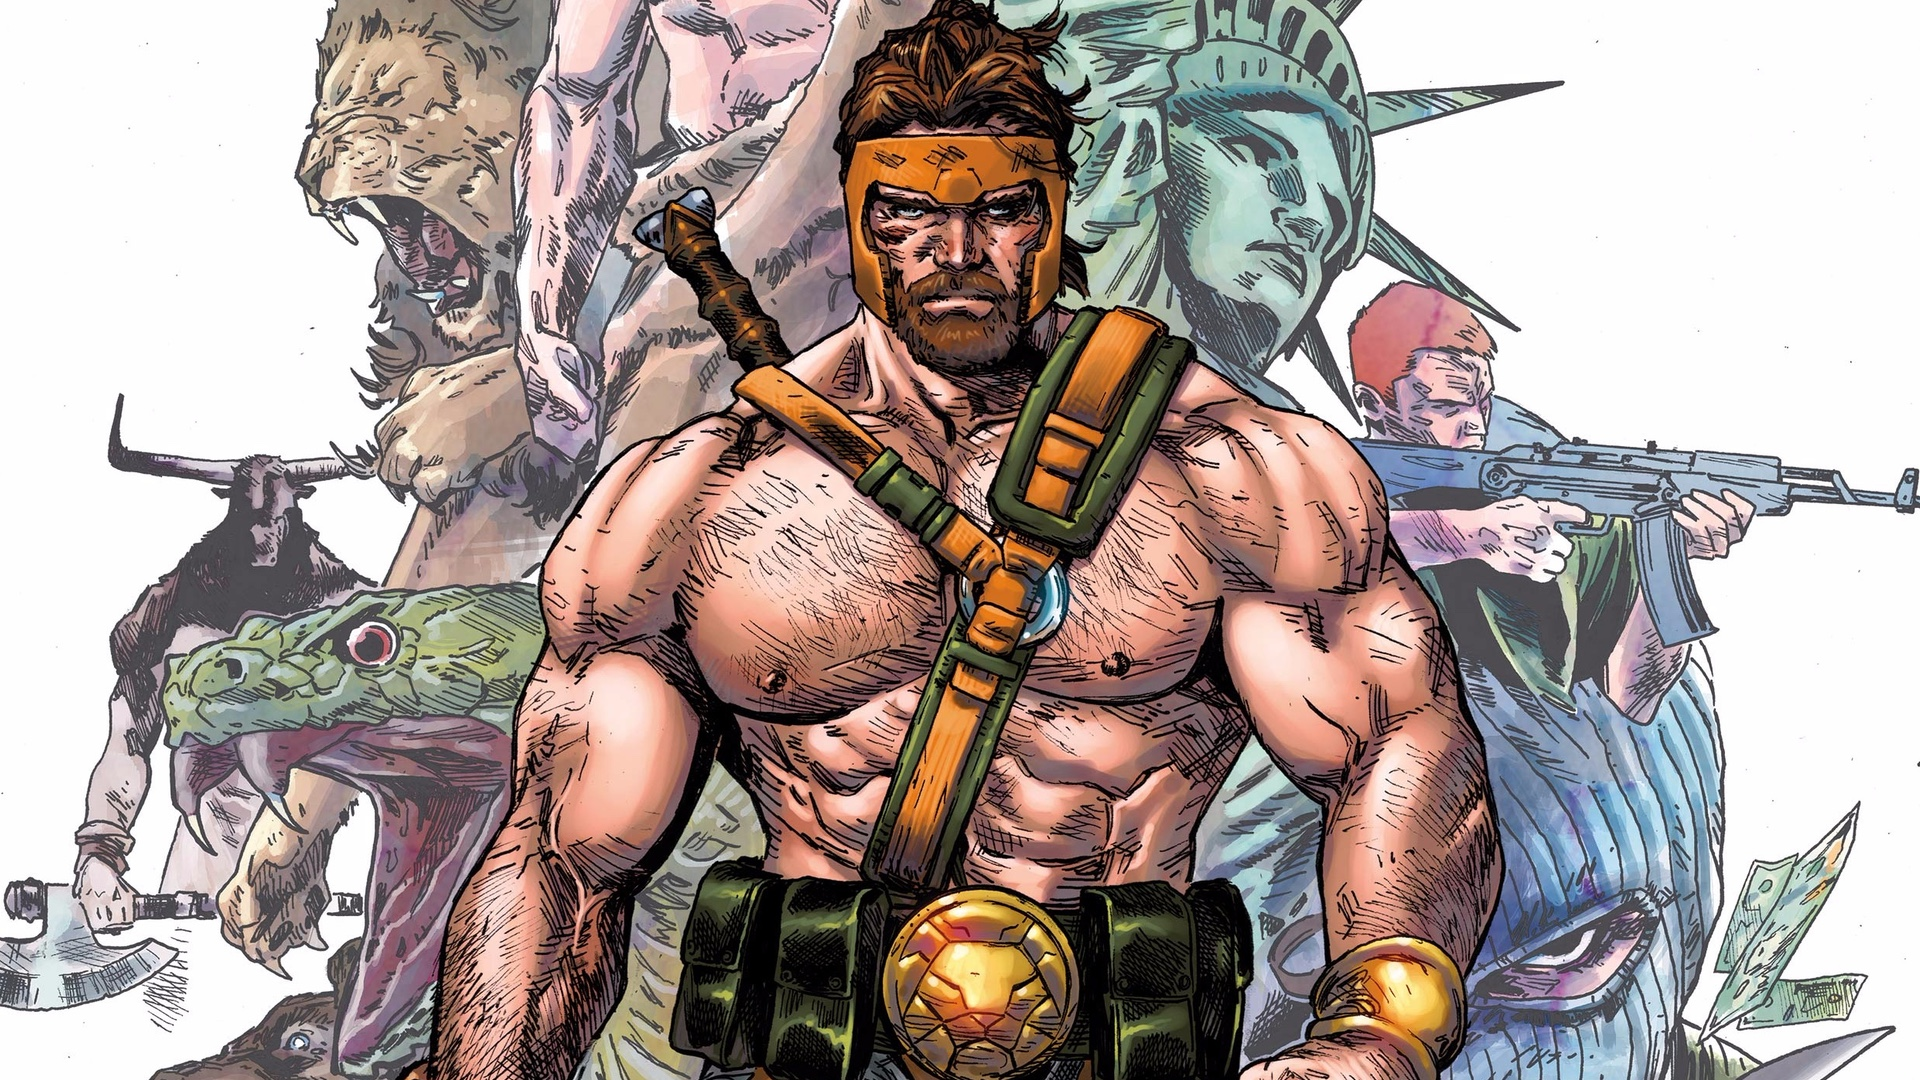 HERCULES Is Rumored to Be the Male Lead Role in Marvel's THE